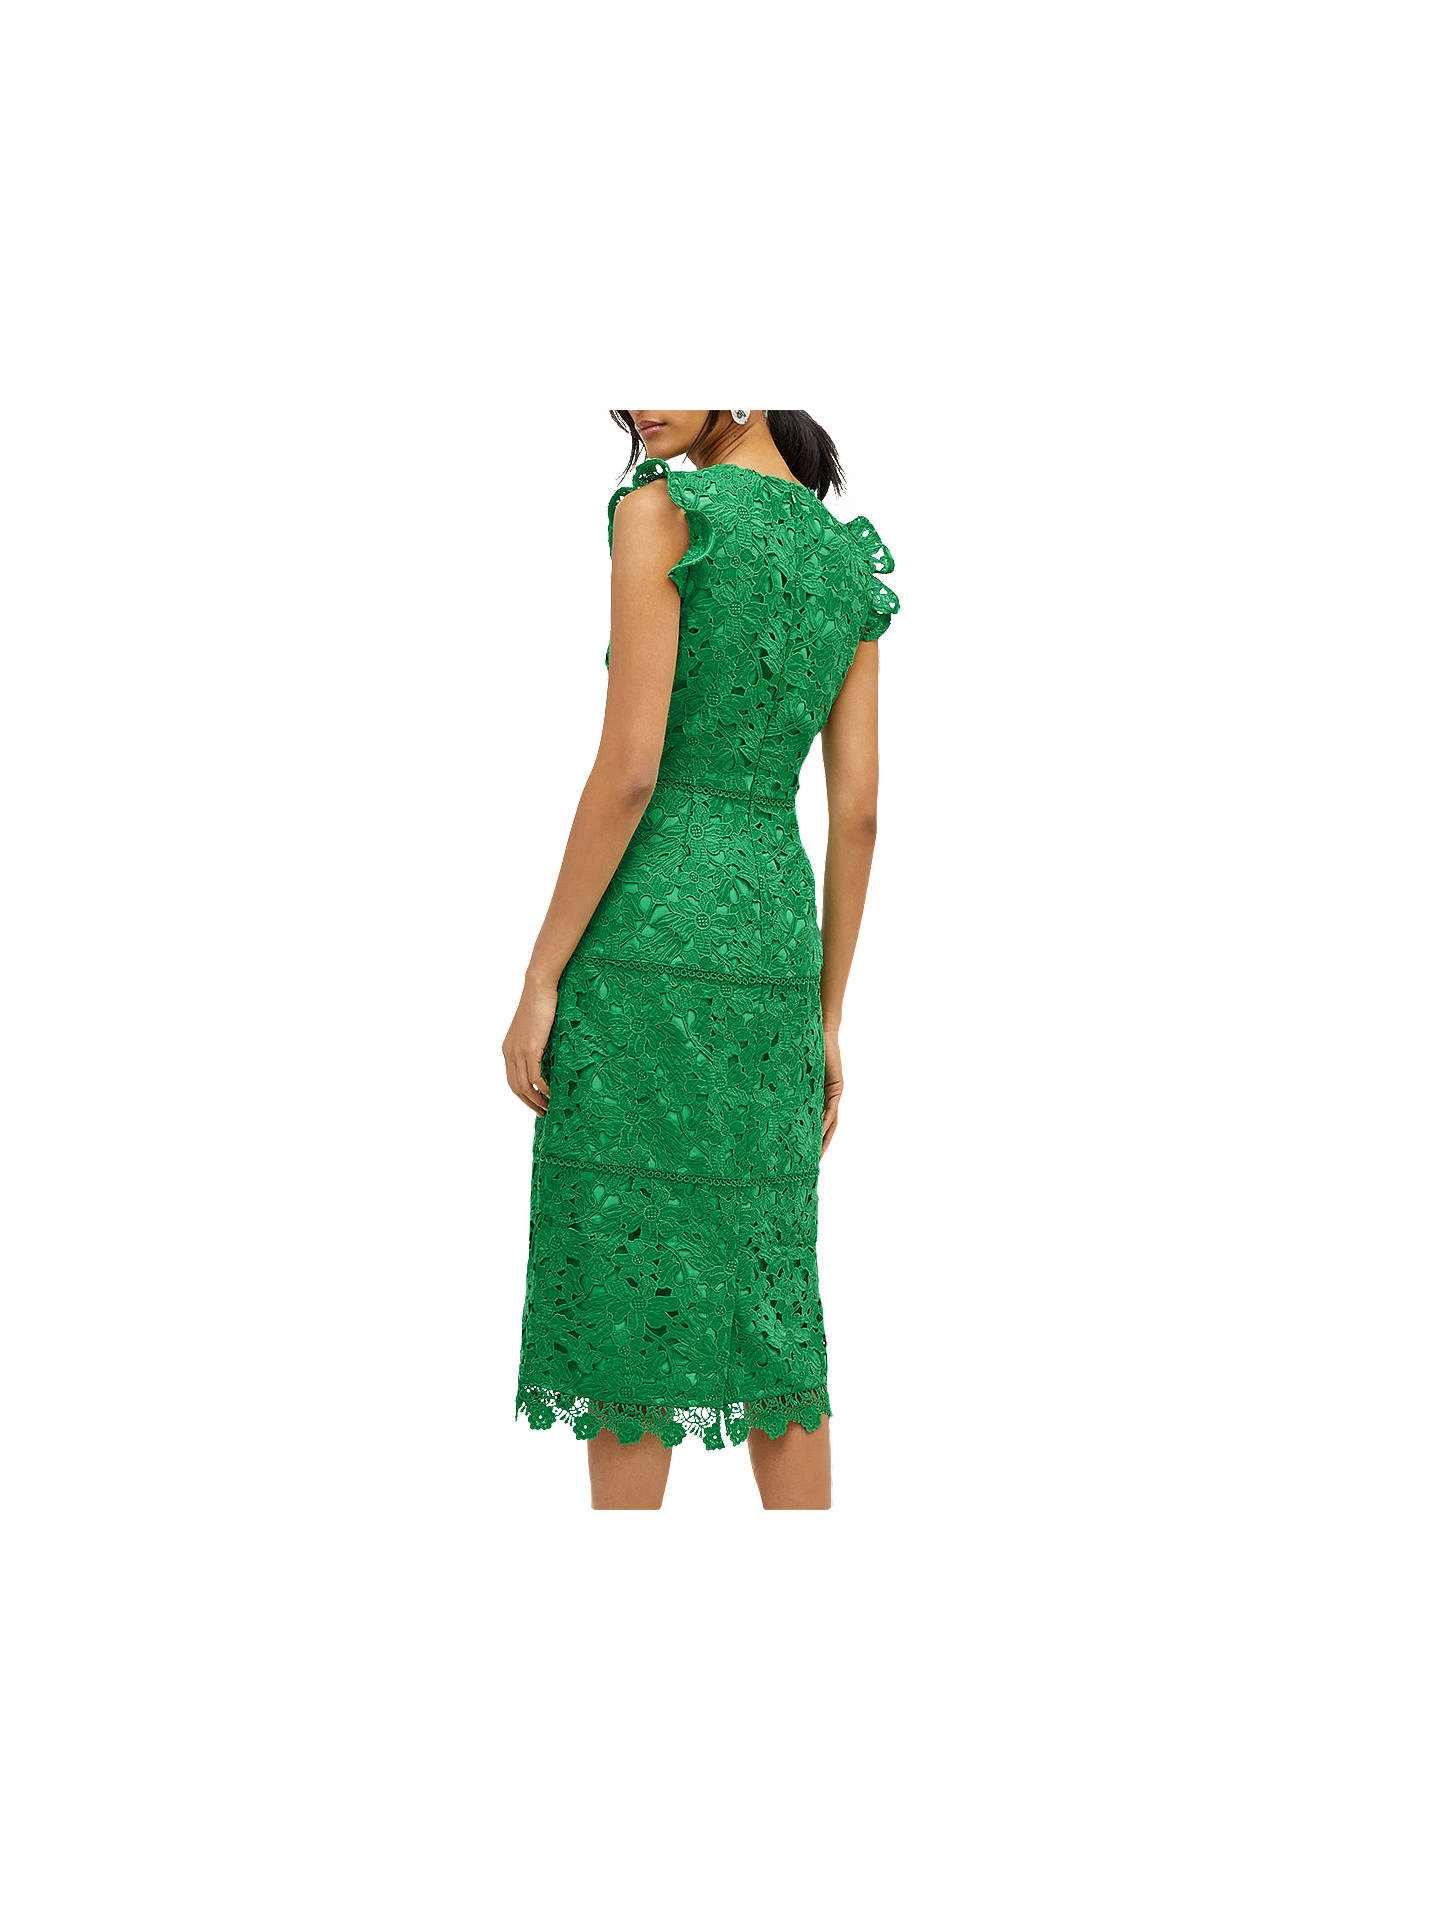 BuyWarehouse Scallop Hem Lace Dress, Green, 6 Online at johnlewis.com